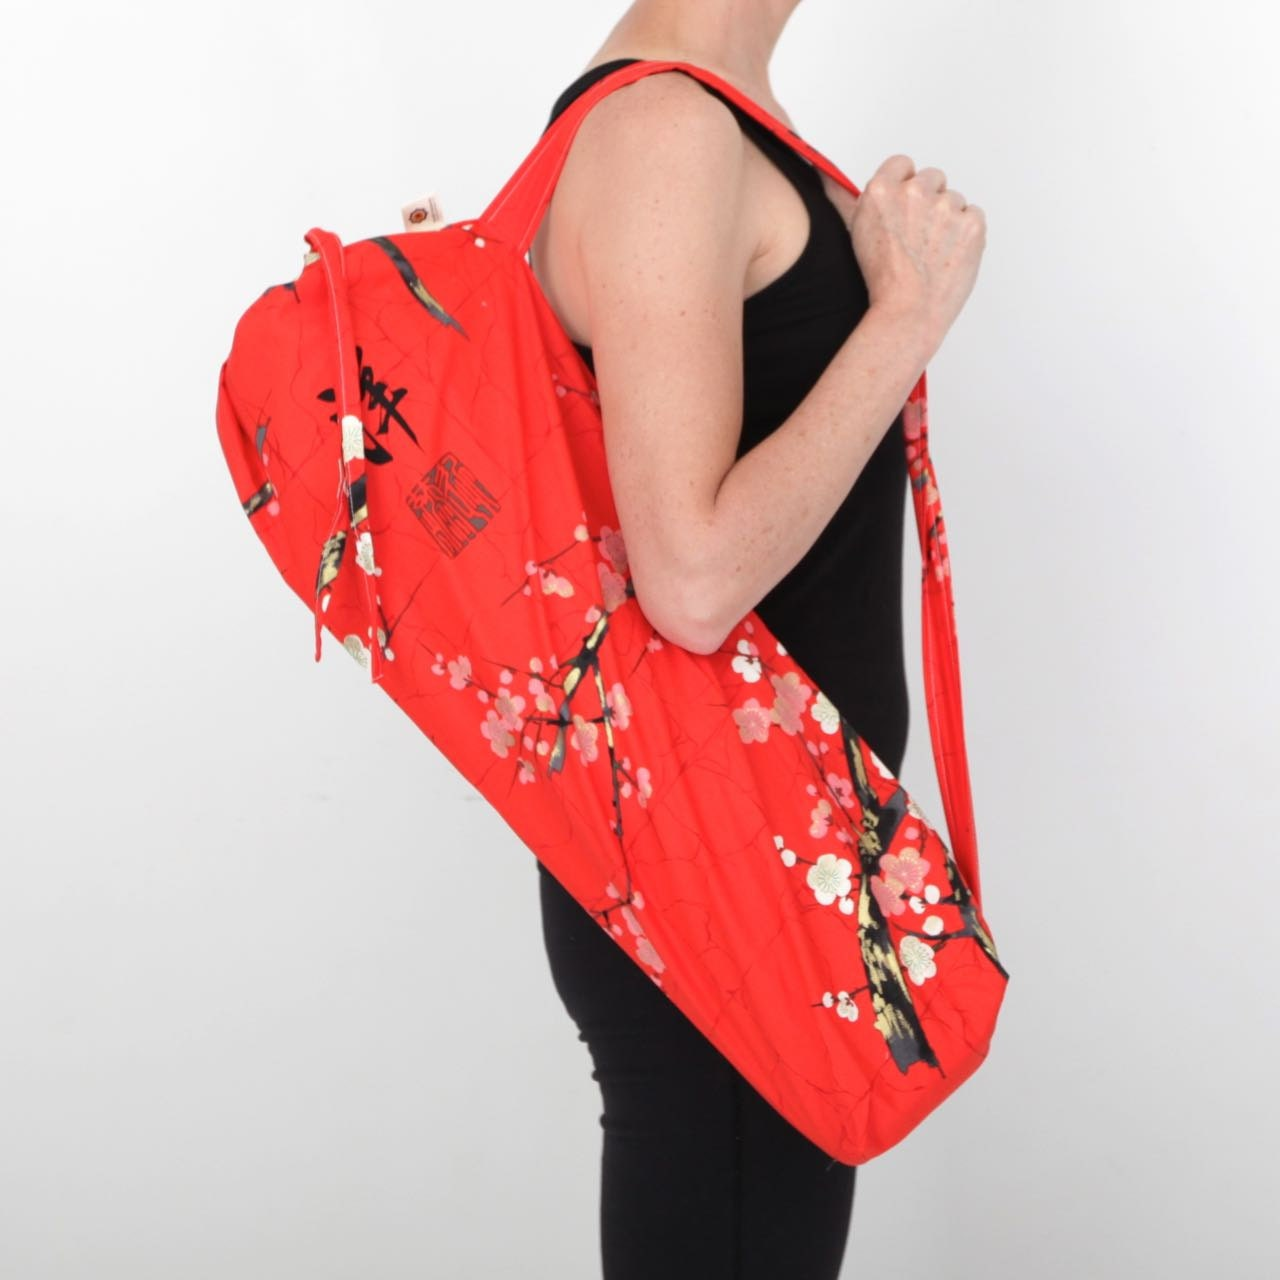 Yoga Mat Bag Pilates Mat Carrier Hot Yoga Drawstring